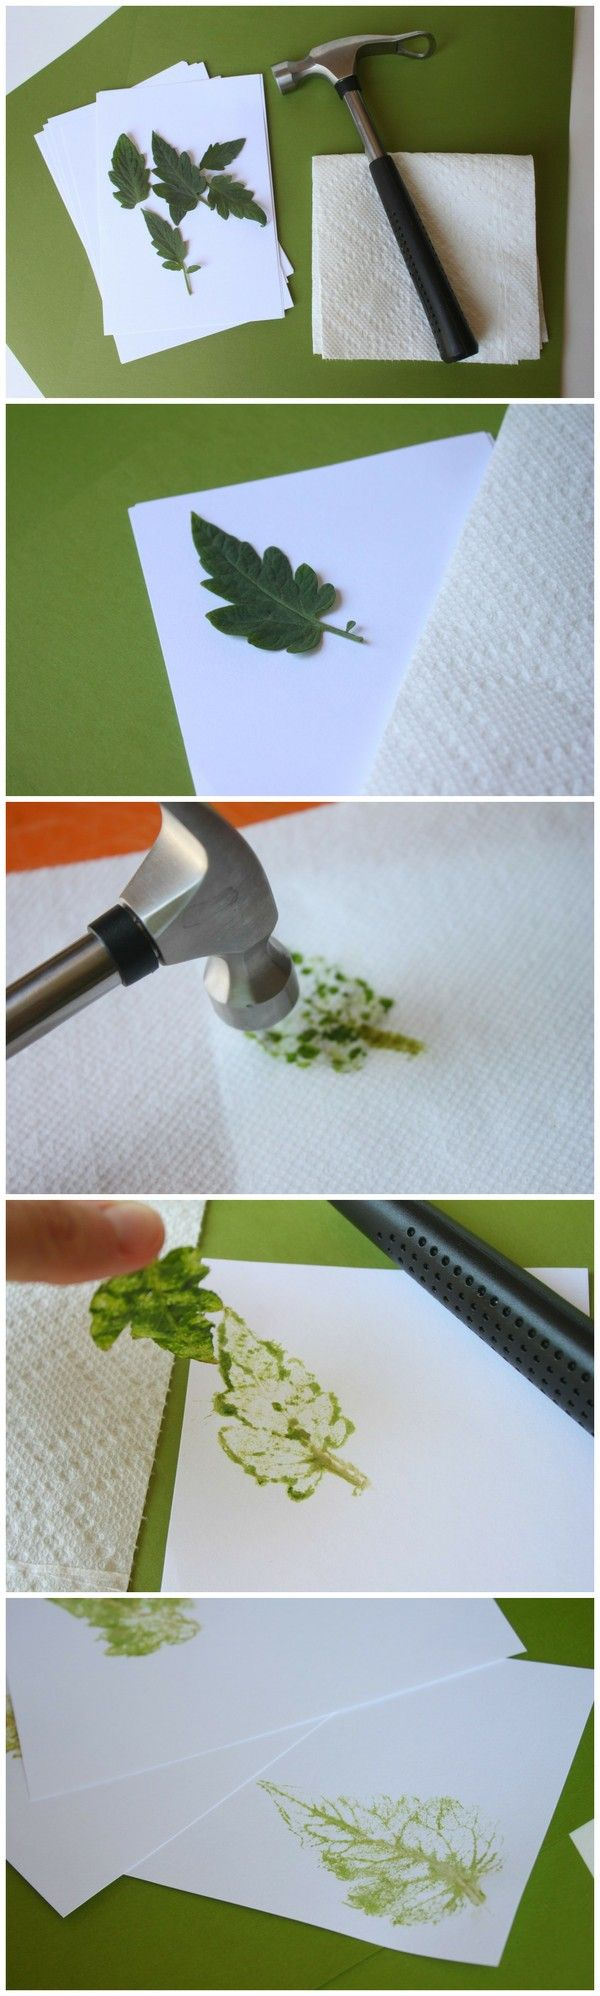 Even do not need to paint, the direct use of the green leaf itself, rubbings on paper, but you need a hammer.